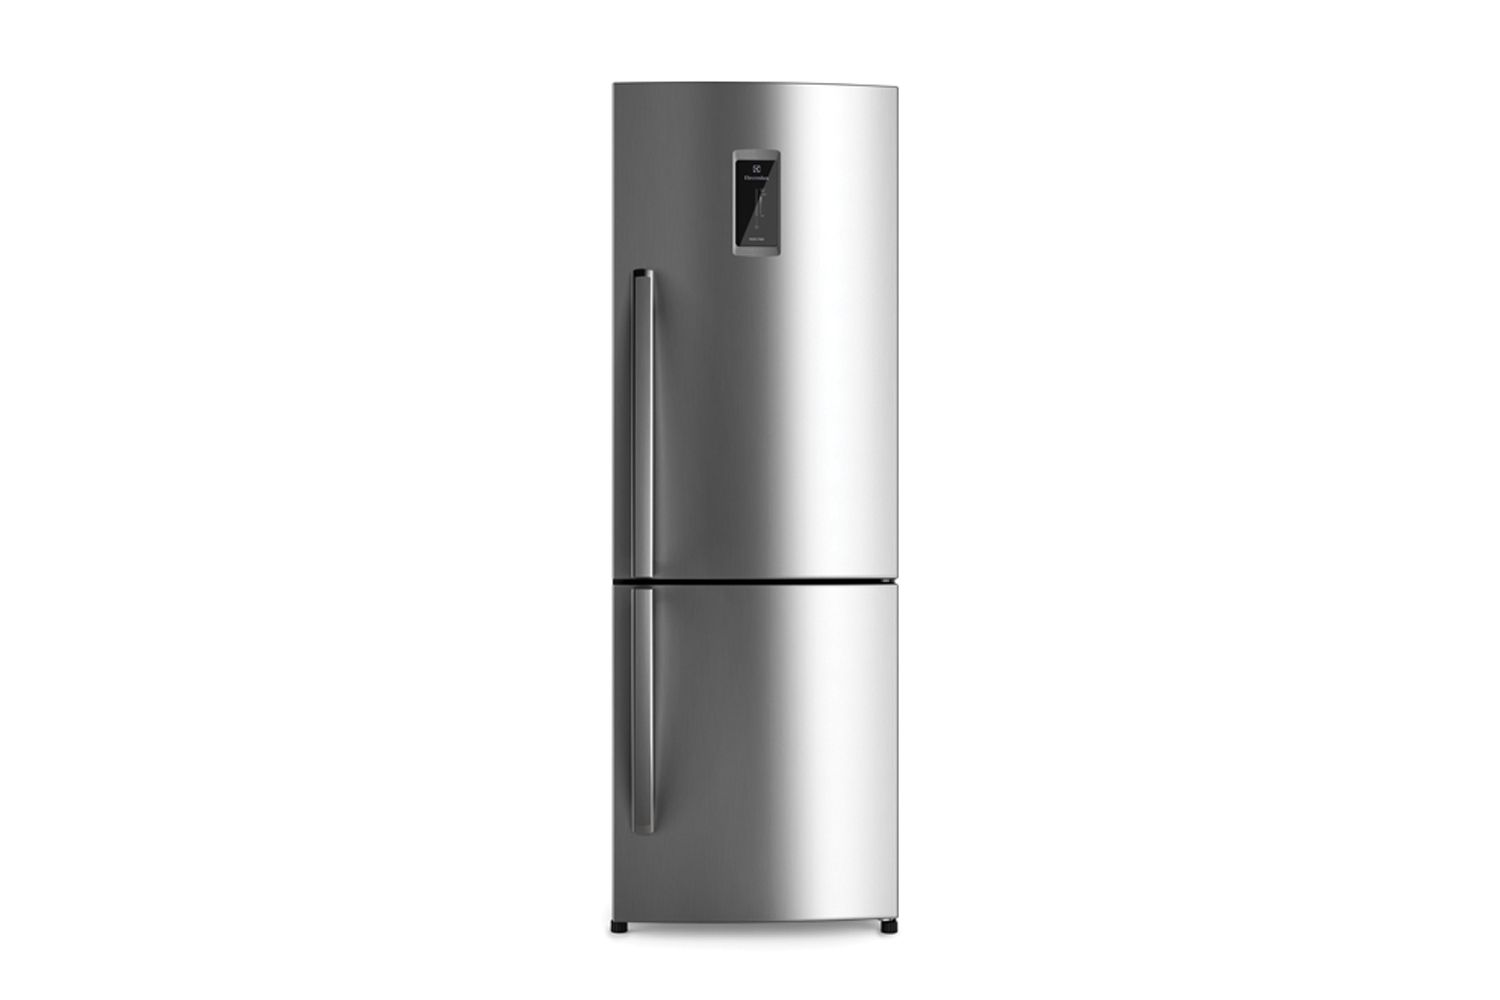 This Fridge Freezer From Electrolux Offers External Electronic Temperature  Controls, Contemporary Power Efficient LED Lighting And Is Finished In Mark  ...